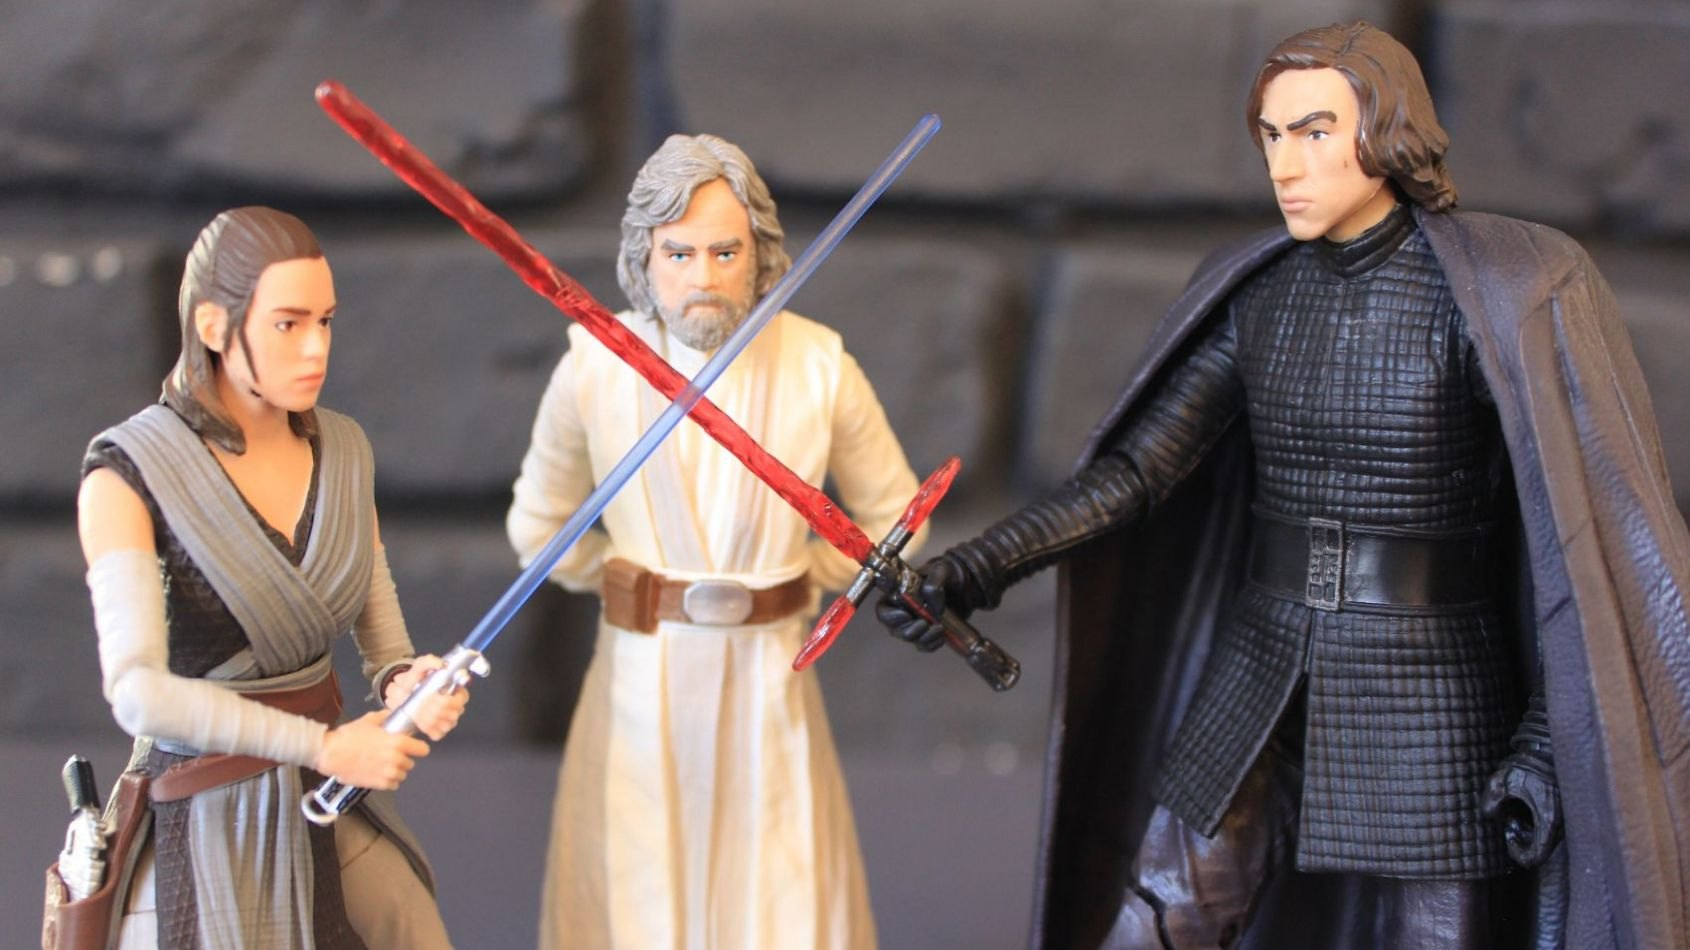 Review des Figurines Hasbro Black Series des Derniers Jedi !